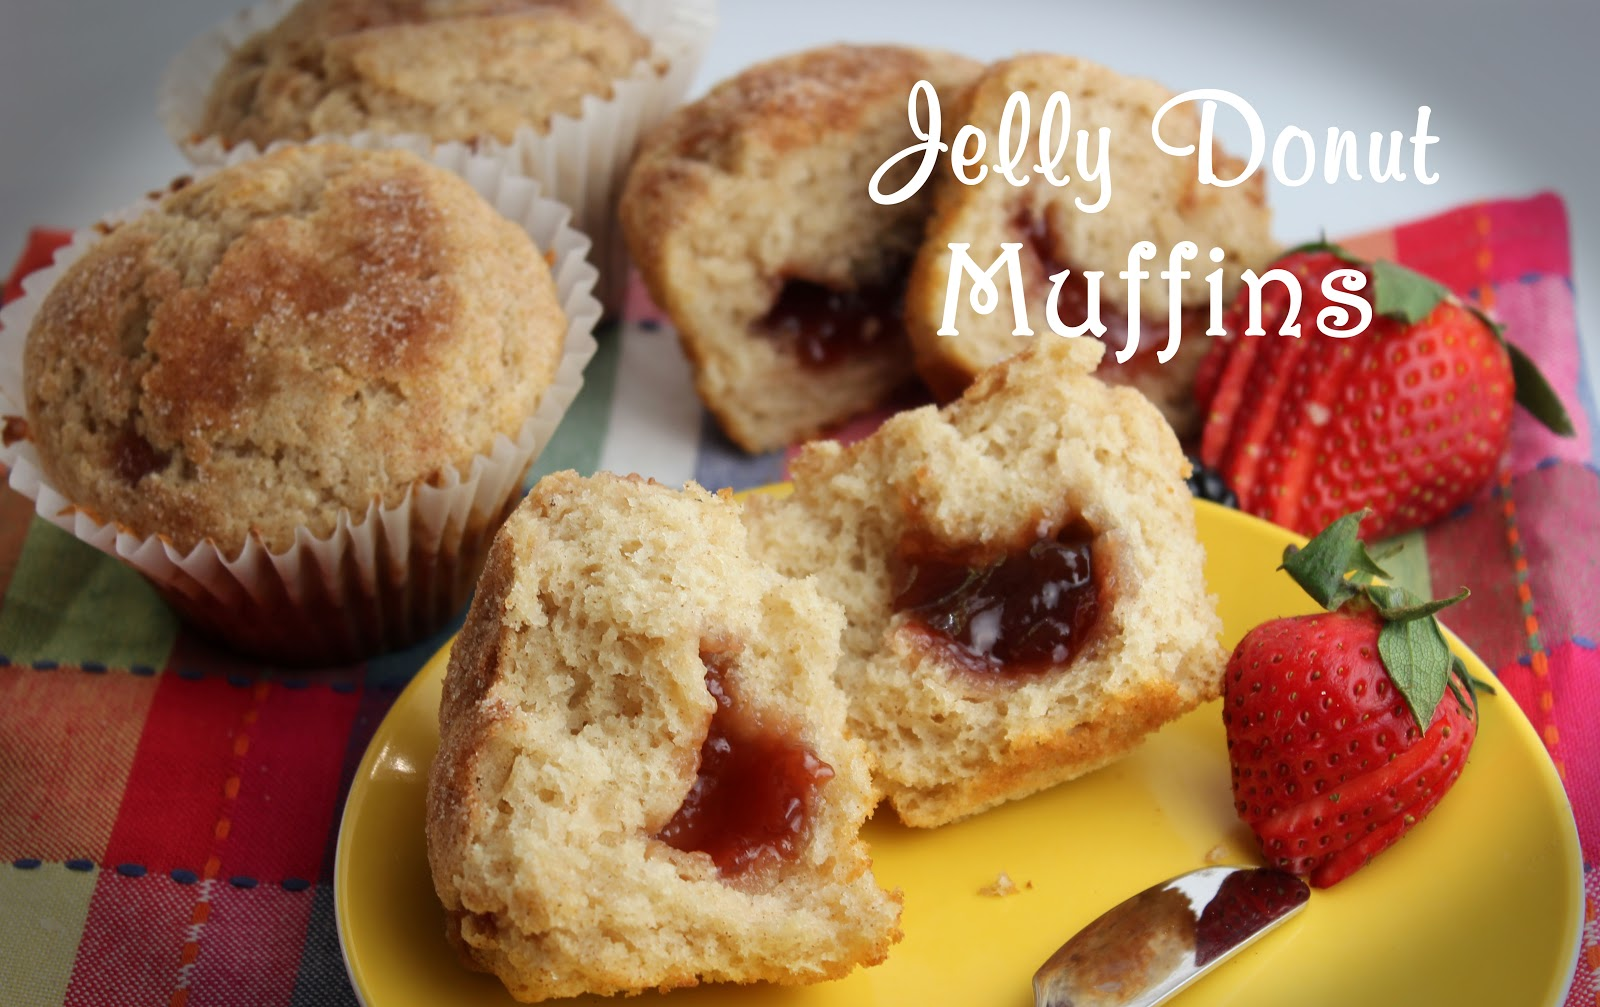 Jelly Donut Muffins